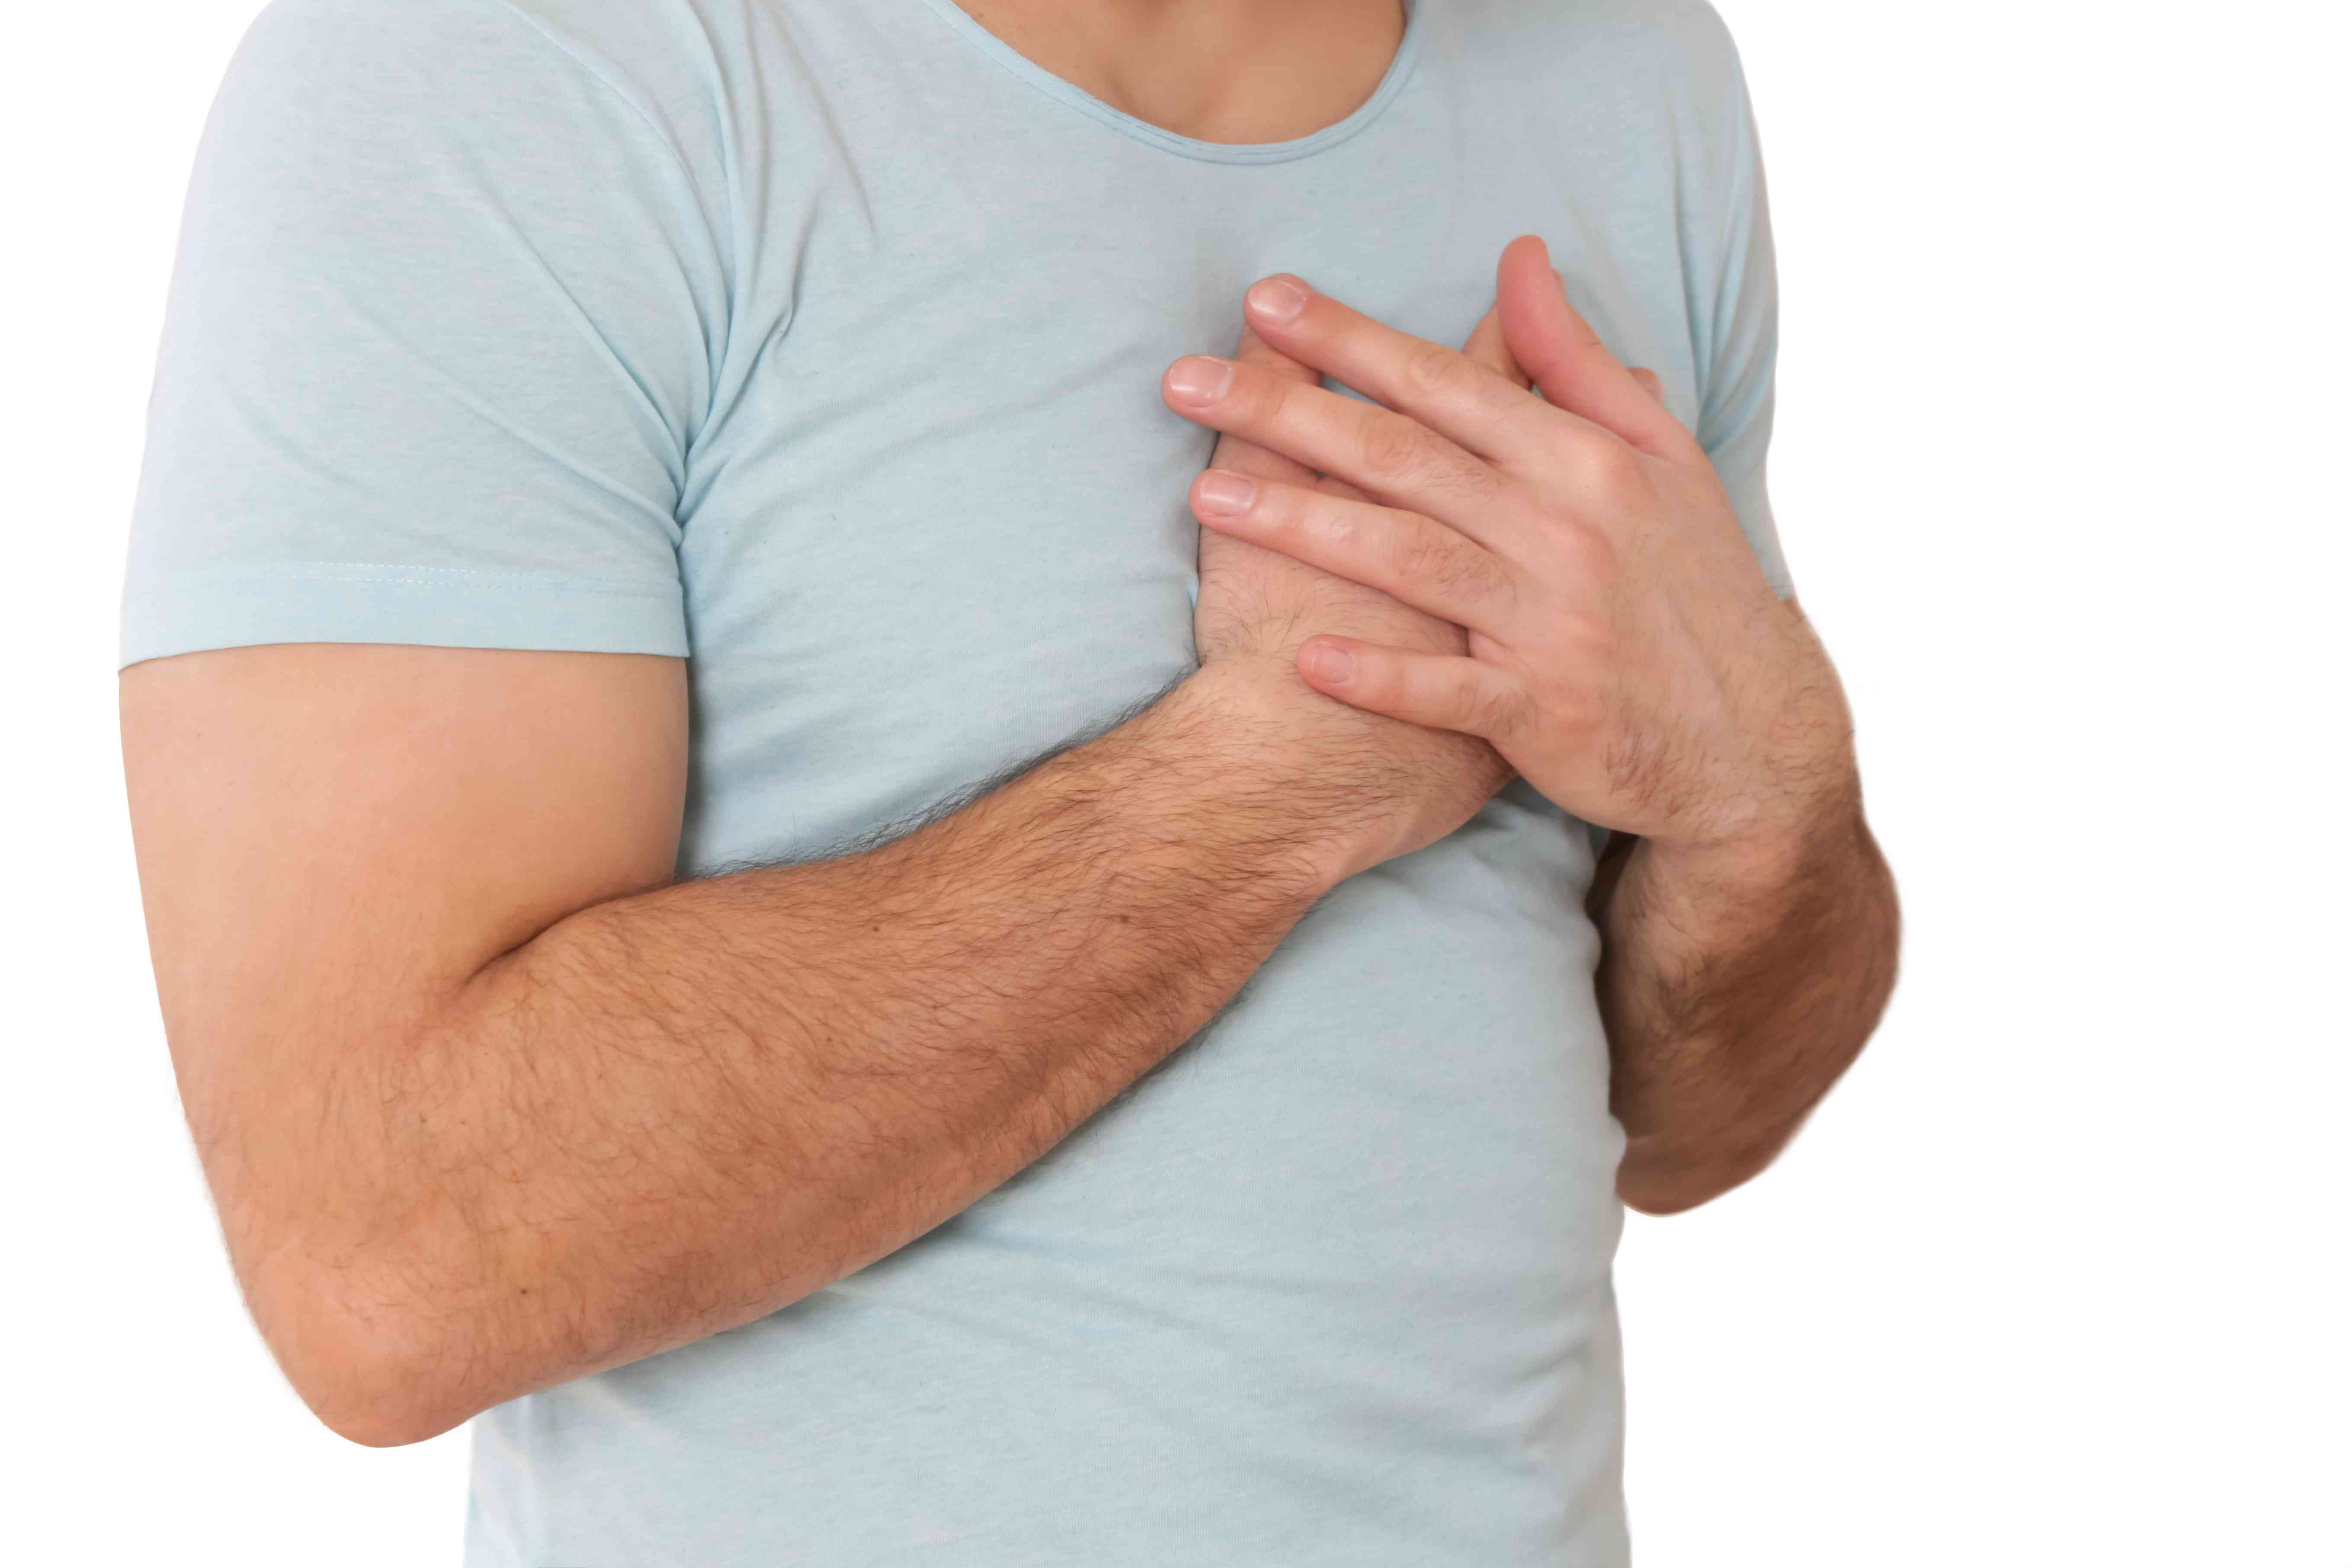 Man holding hand to spot chest pain